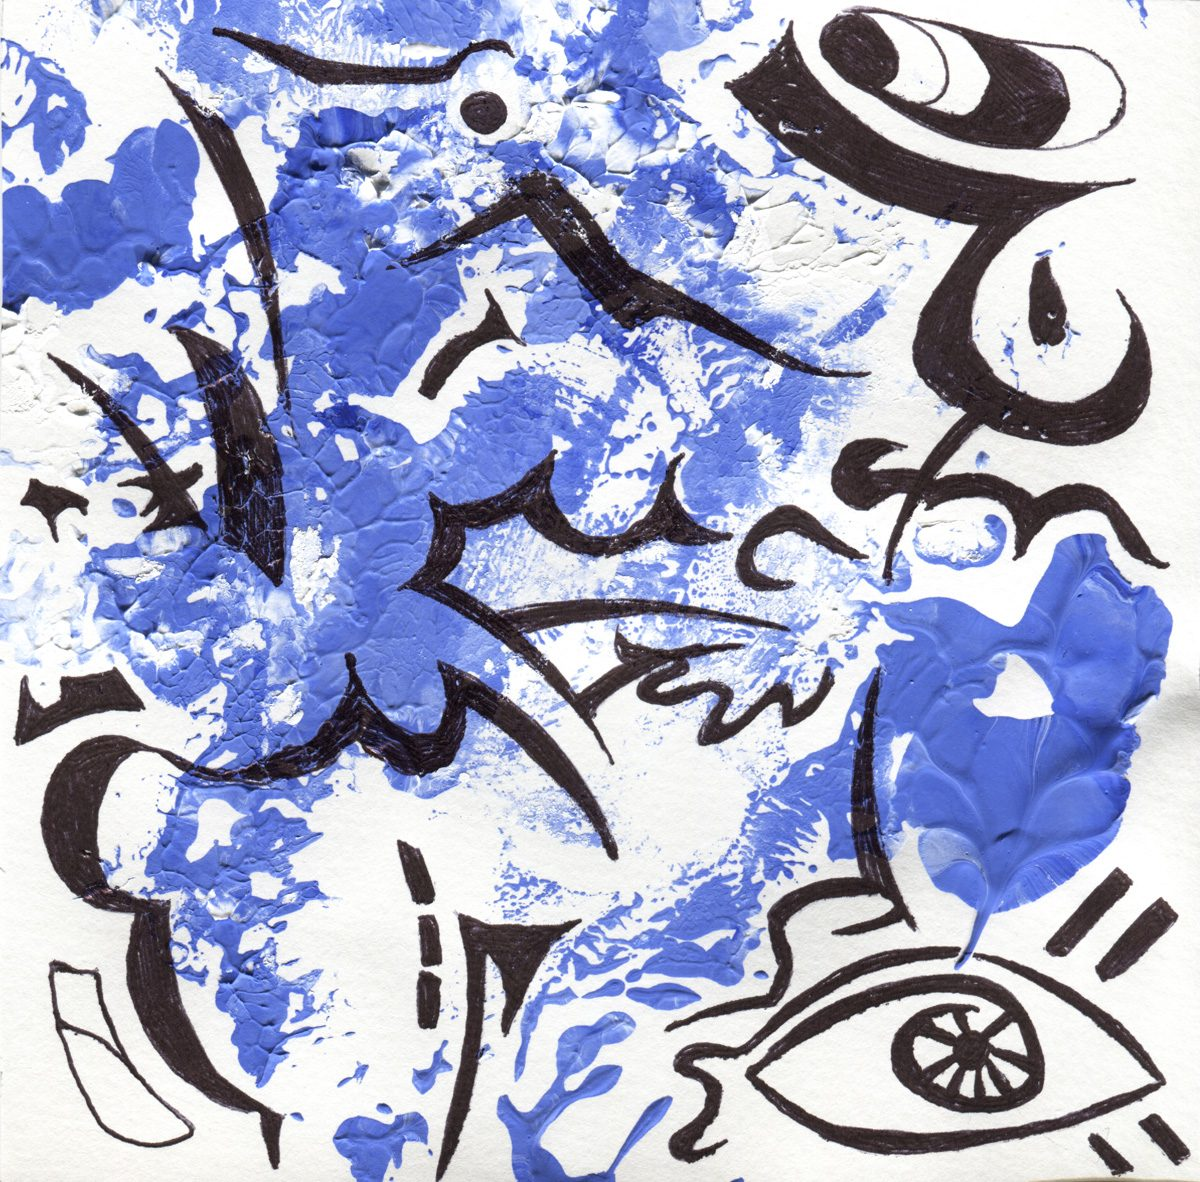 The image shows a piece of artwork by Jina Wallwork. It is a paint and ink drawing of abstract subject matter and an eye. Stylistically this piece of artwork has links with abstract art.